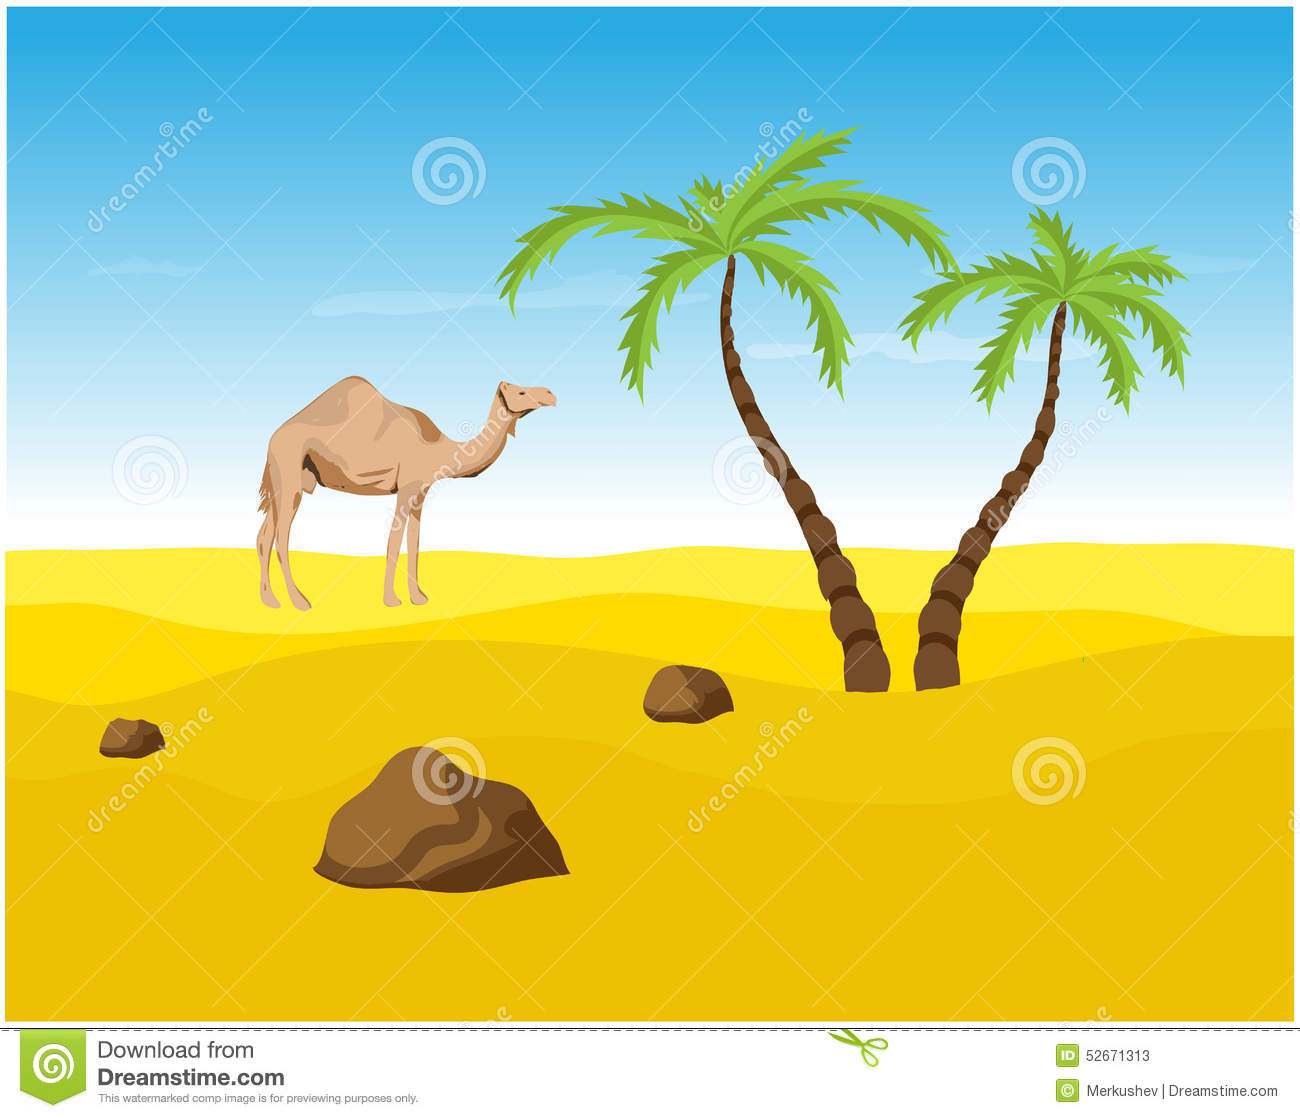 Camel And Palms In The Desert Oasis Stock Vector Illustration Of